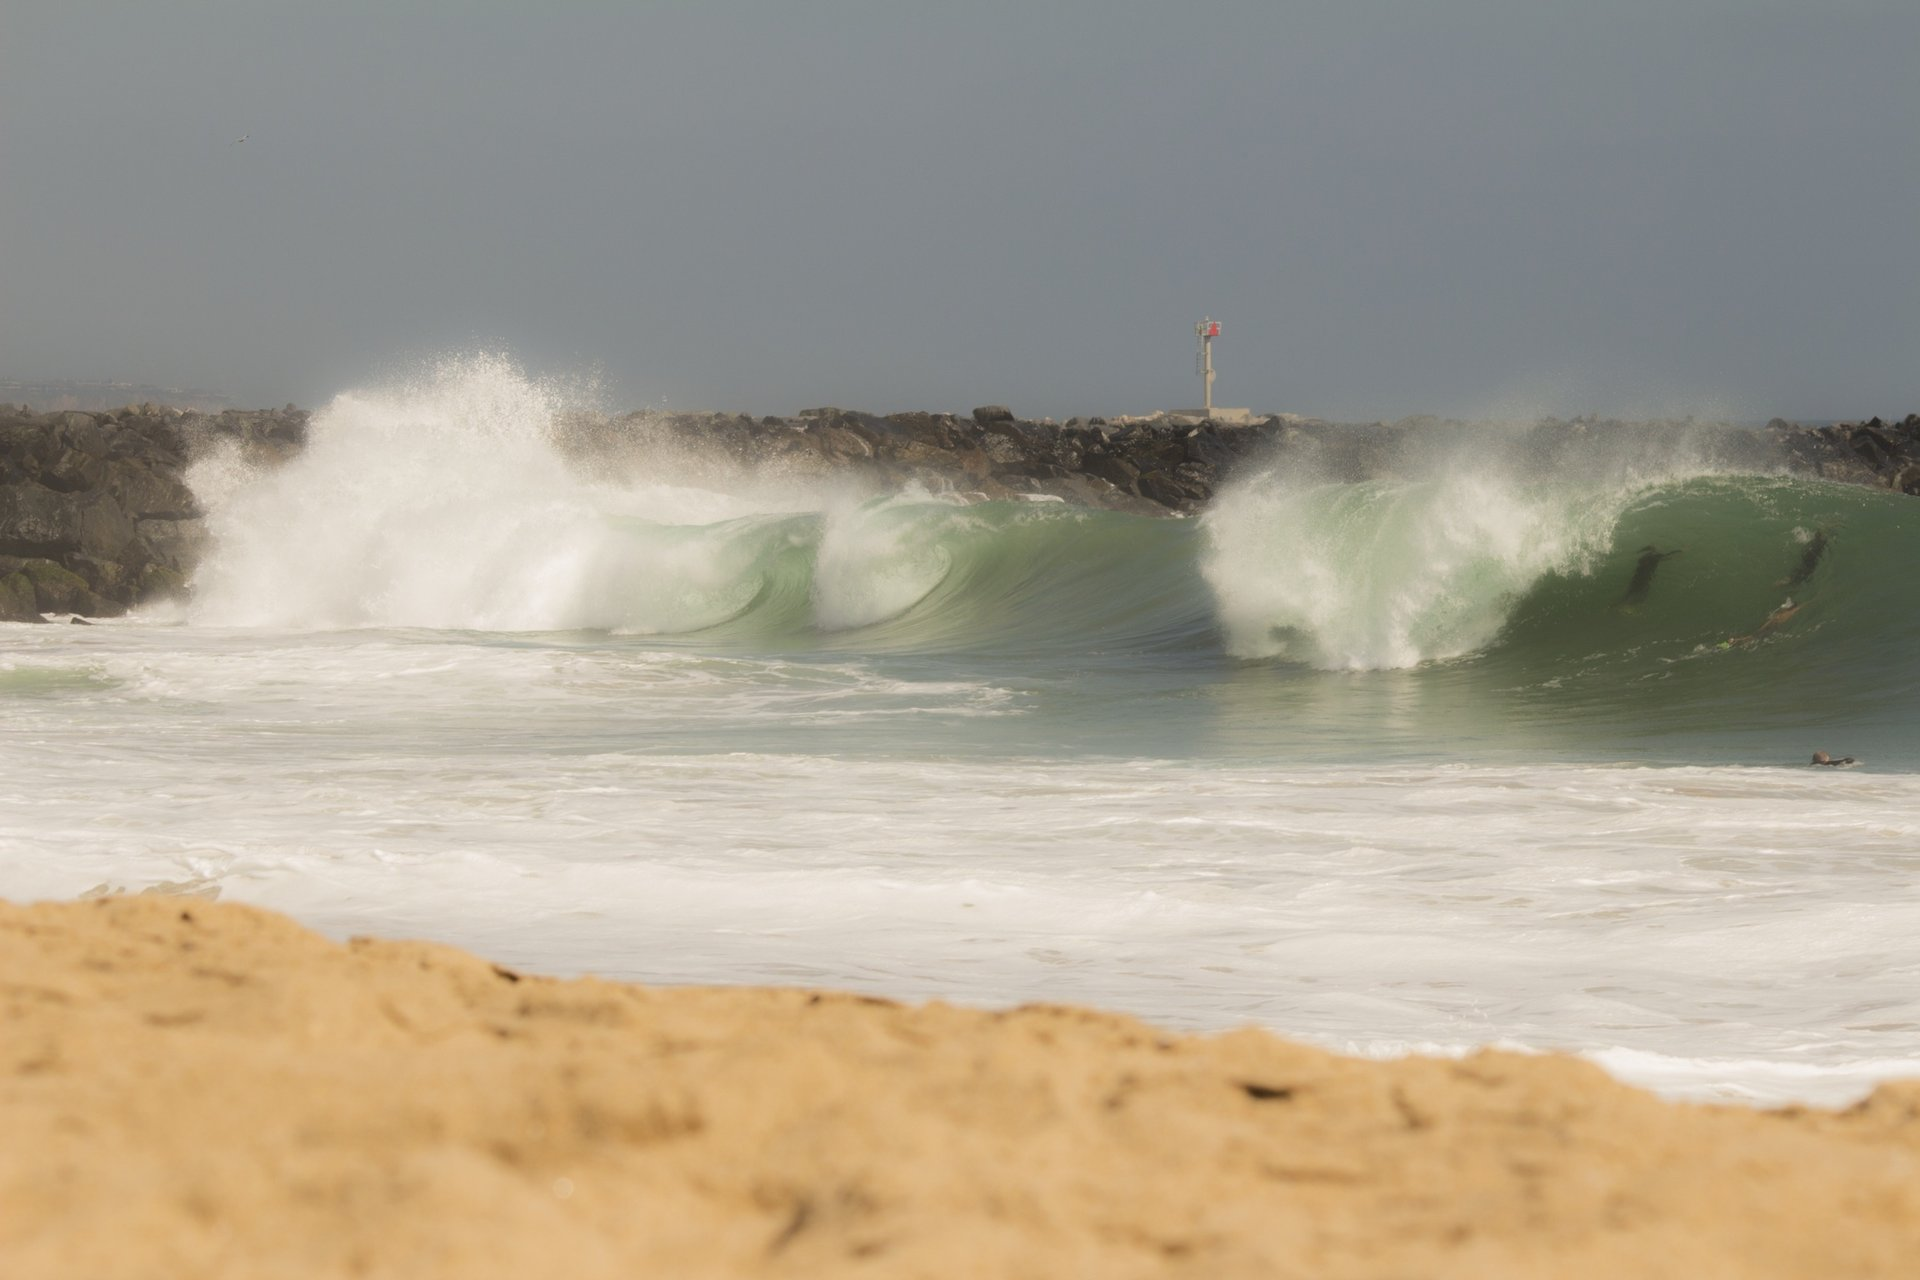 user818780's photo of The Wedge